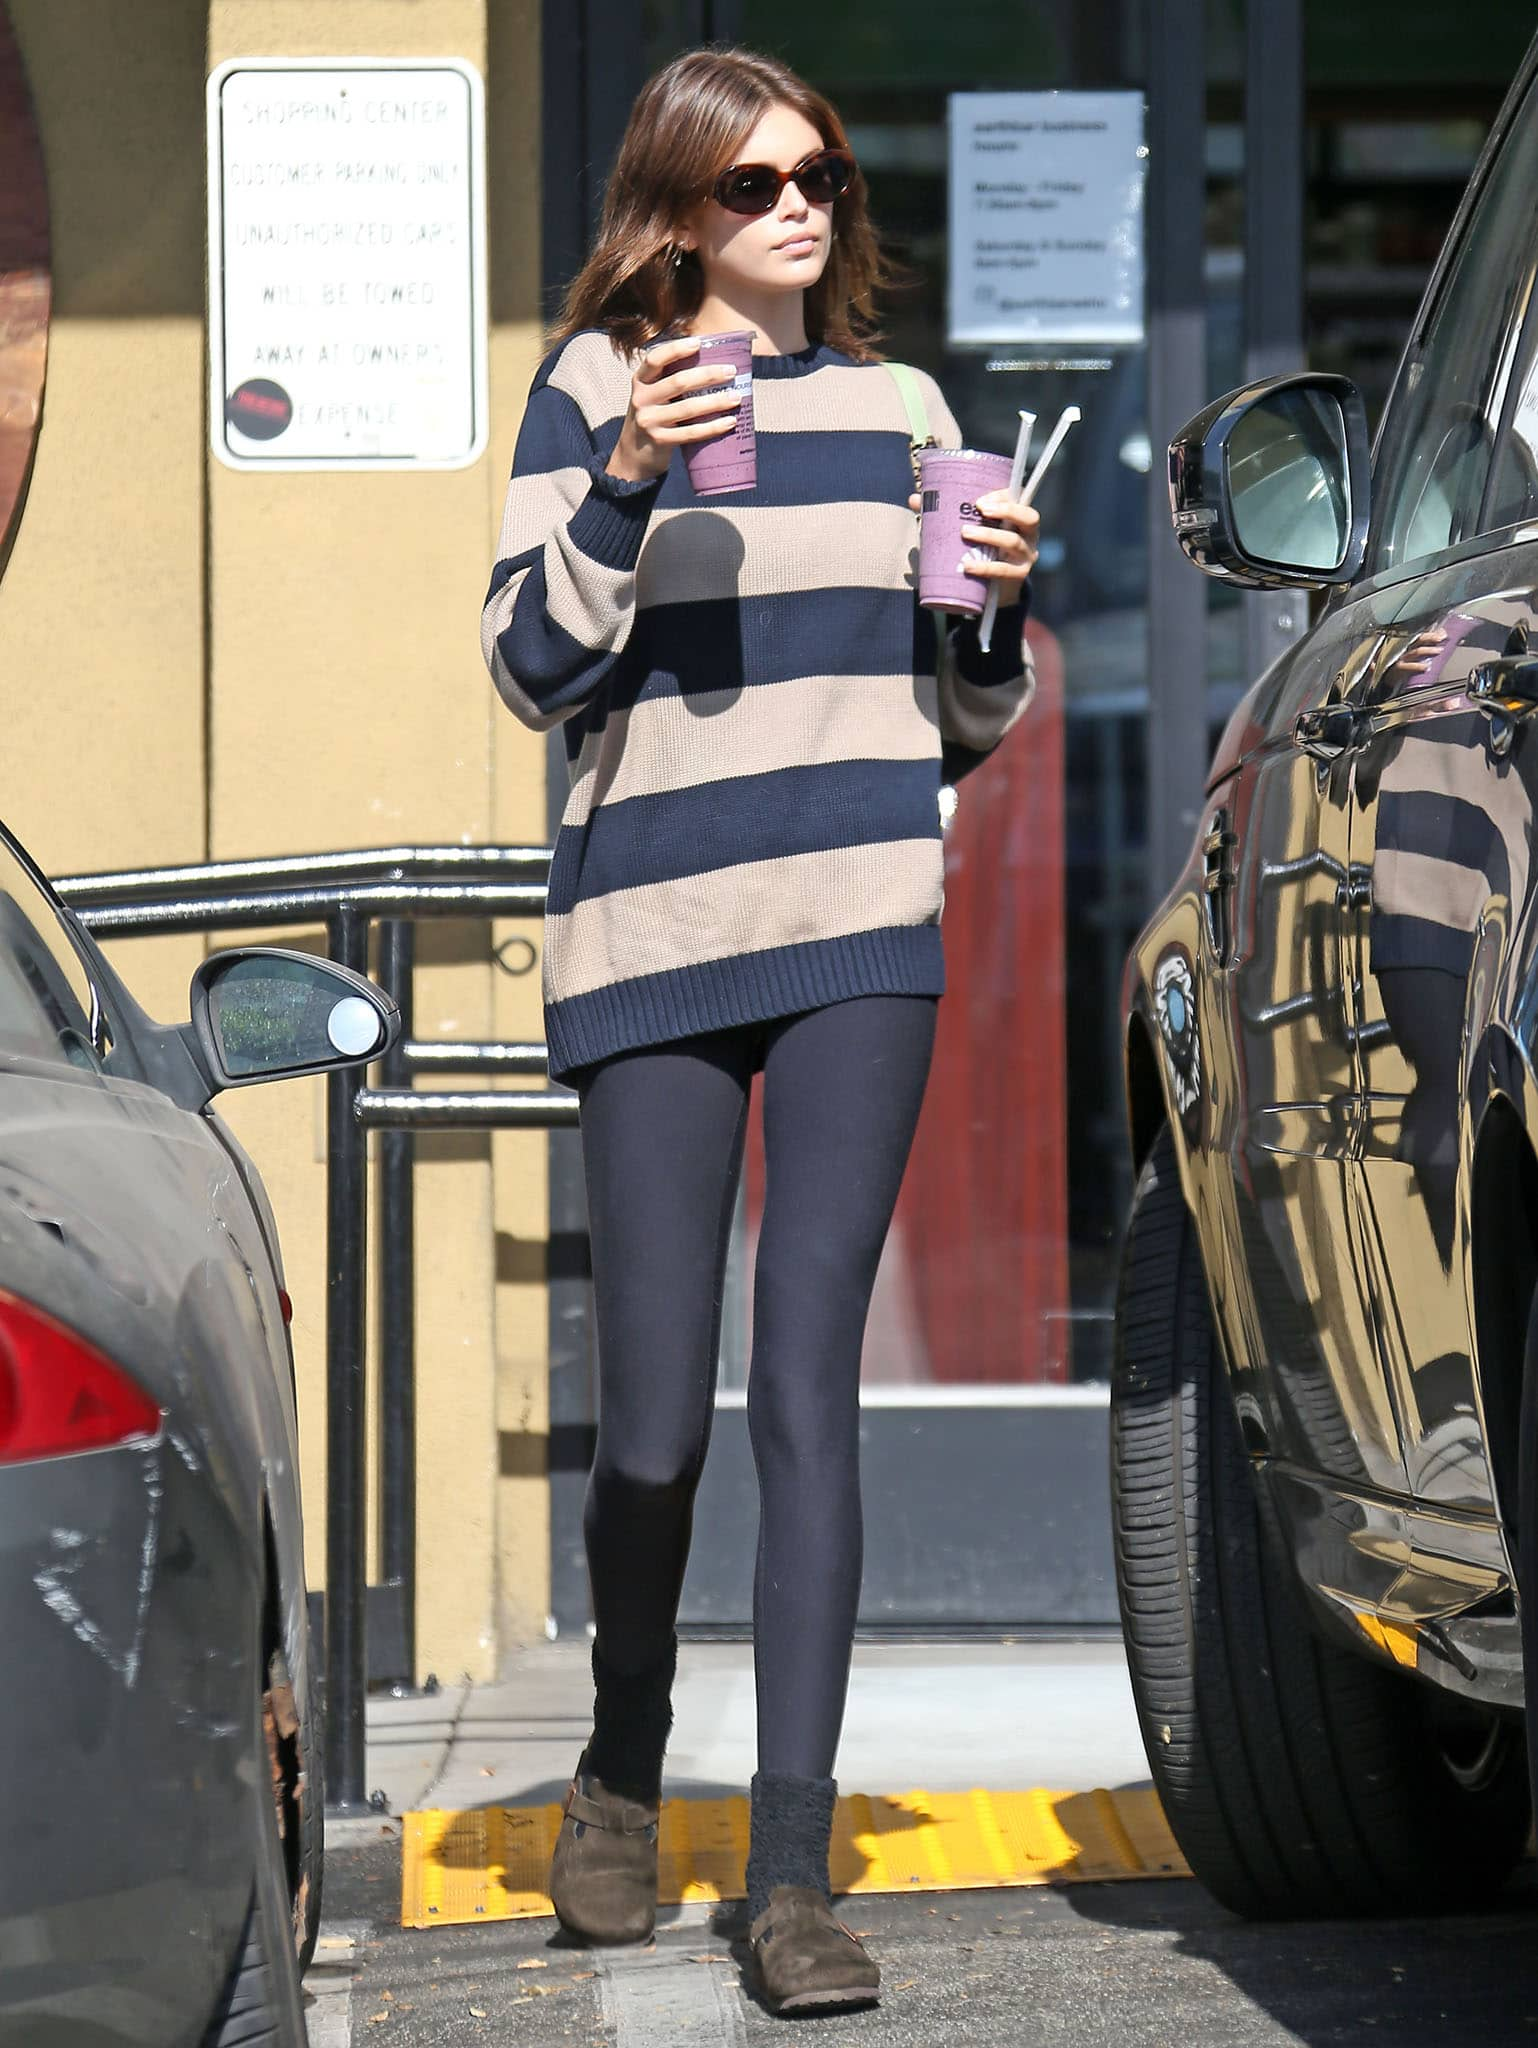 Kaia Gerber grabs smoothie in a striped sweater with black leggings at Earth Bar in Los Angeles on June 22, 2021